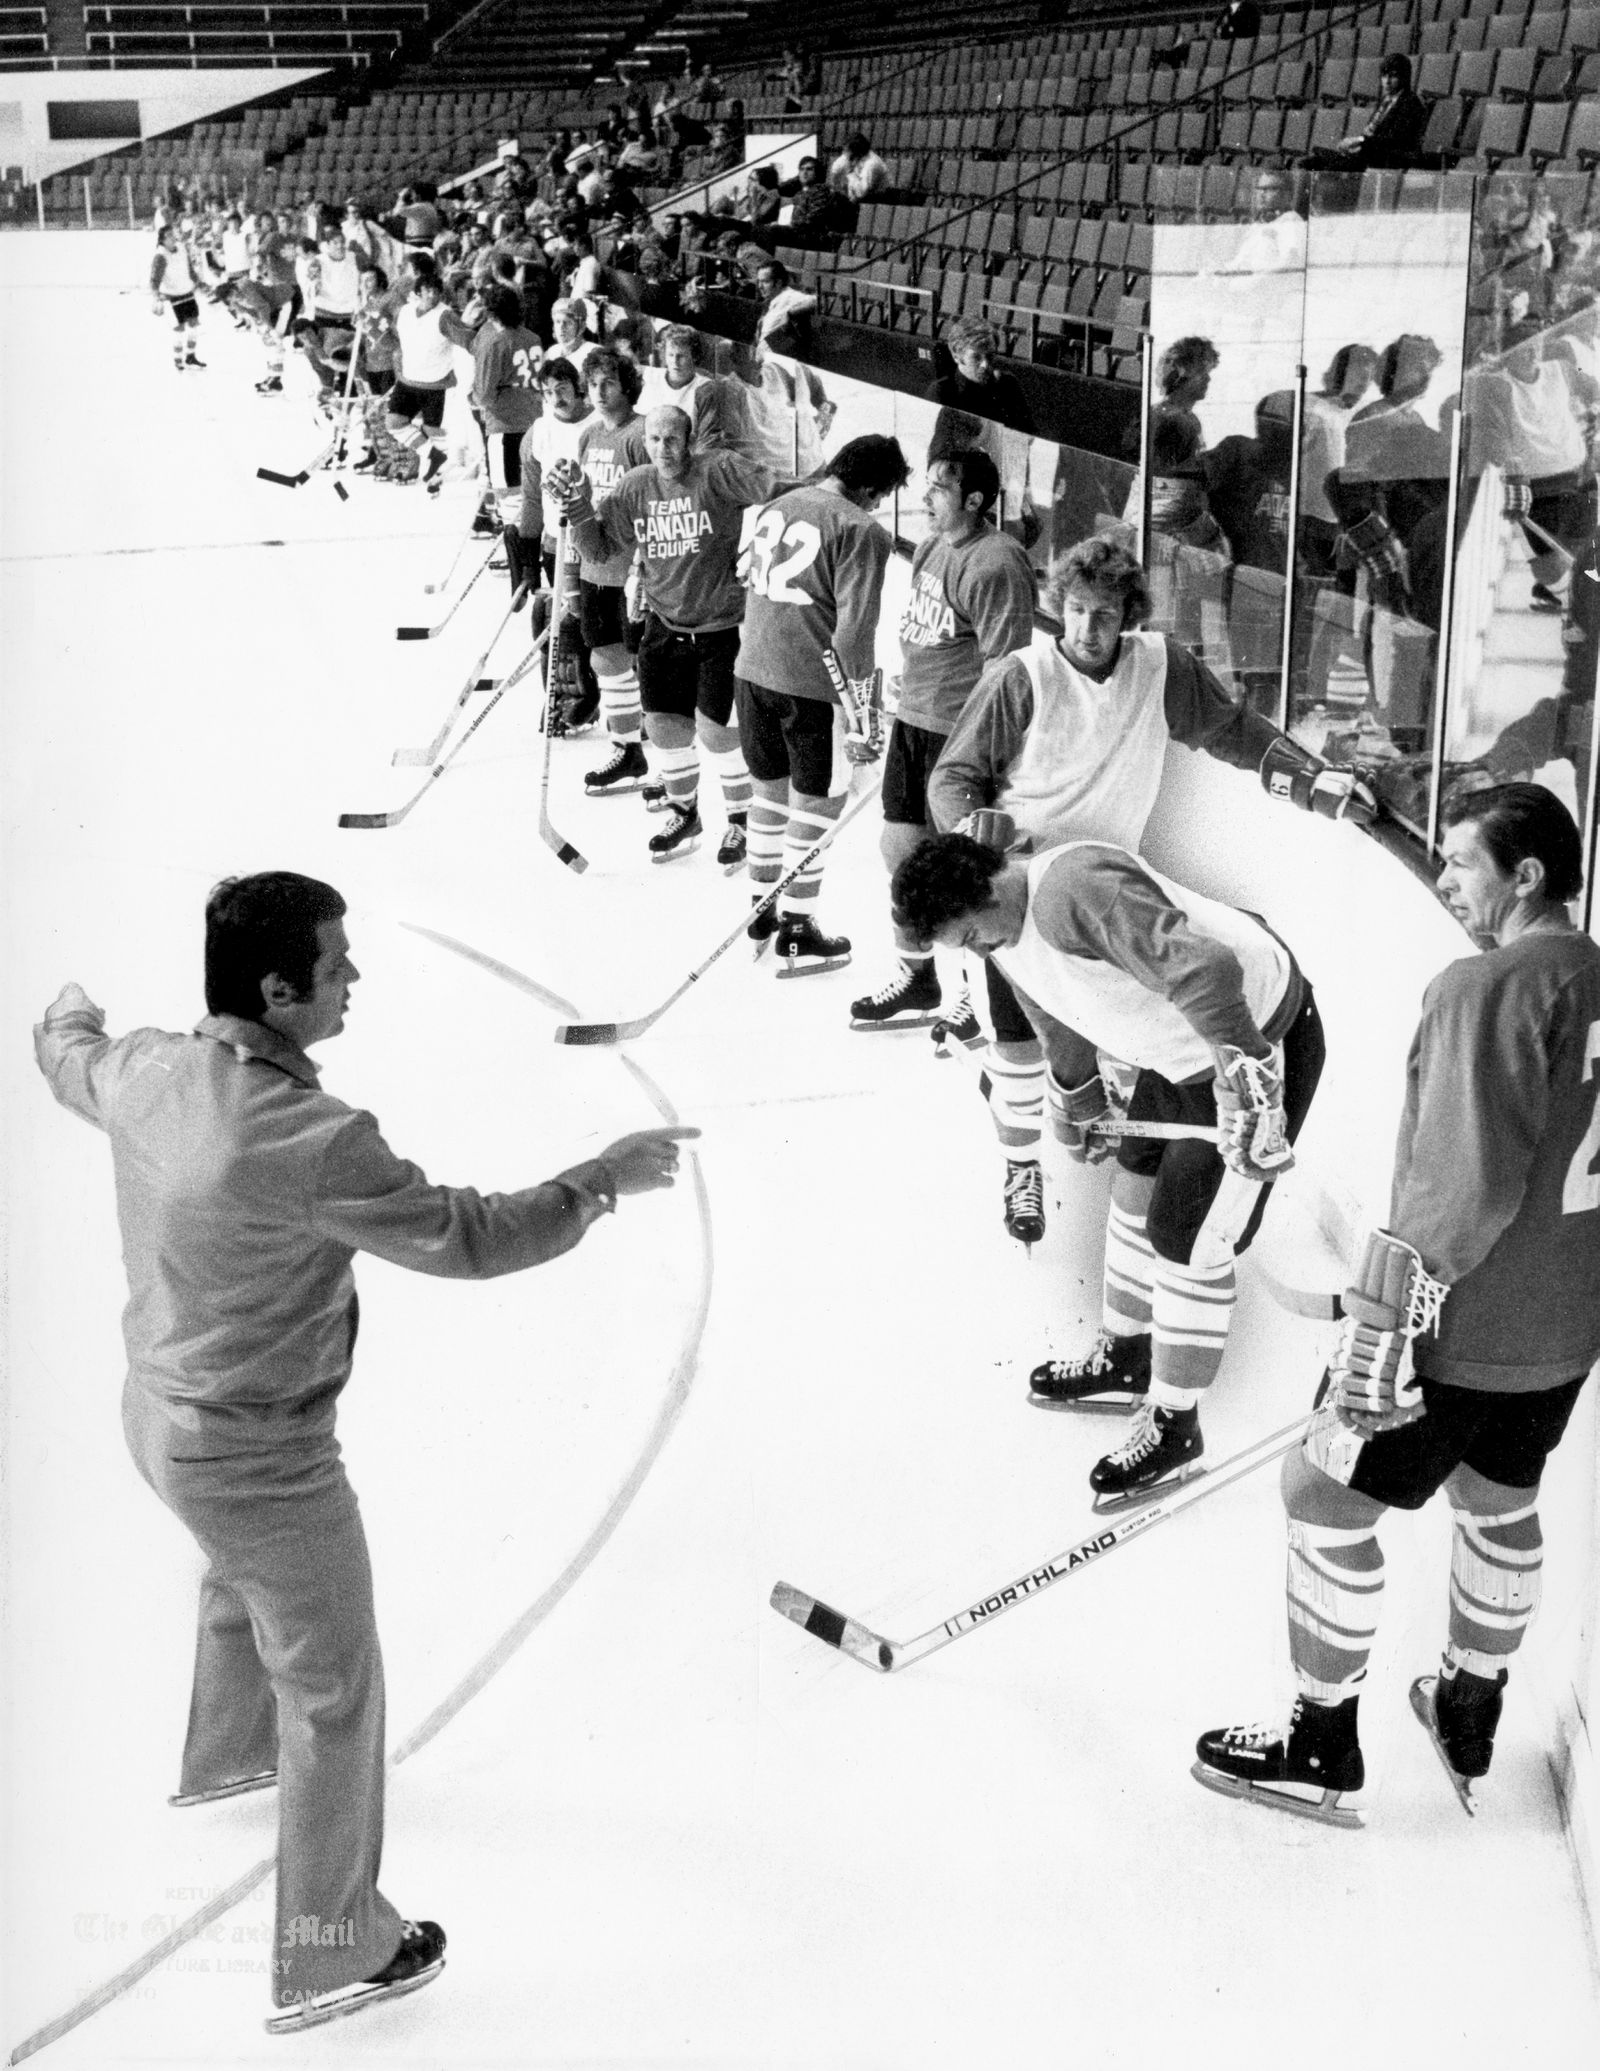 AUGUST 14, 1972 -- TORONTO -- TEAM CANADA TRAINING CAMP -- Team Canada players gather by boards in order to listen to head coach, Harry Sinden, during first practice session at Maple Leaf Gardens in Toronto on August 14, 1972. Long line of players starts with Team Canada co-captain, Stan Mikita at right in foreground. Series against Russia starts Sept. 2, 1972 in Montreal. Photo by Barrie Davis / The Globe and Mail. Originally published August 15, 1972.